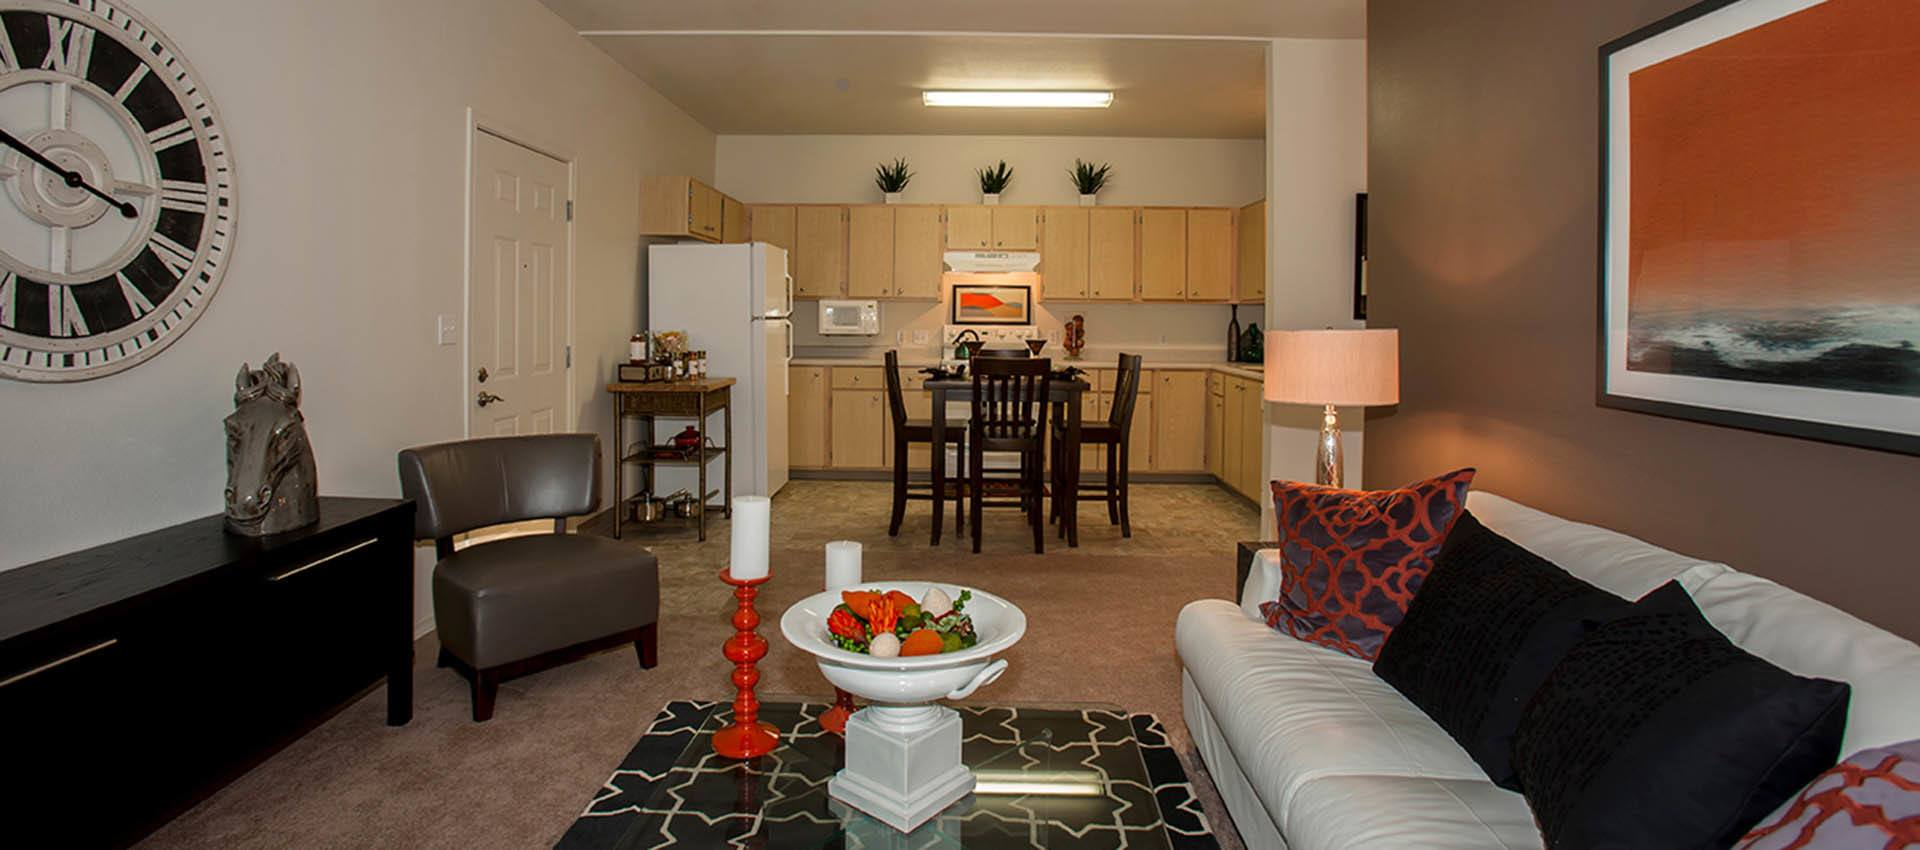 View Towards Kitchen In Standard Residence at Altamont Summit in Happy Valley, OR